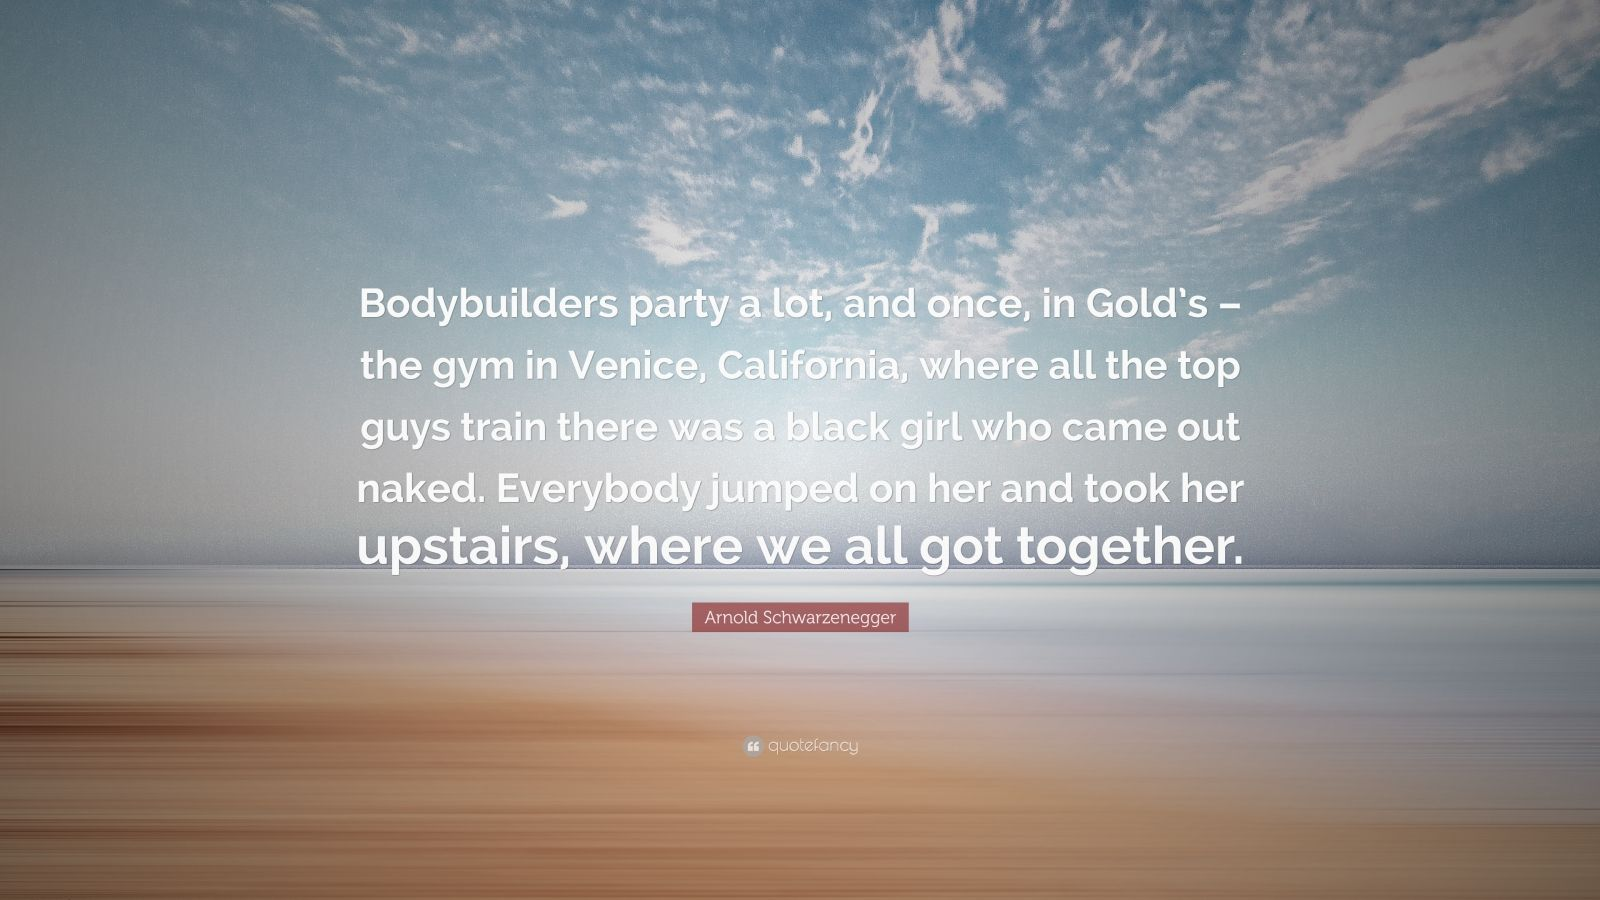 """Arnold Schwarzenegger Quote: """"Bodybuilders party a lot, and once, in Gold's – the gym in Venice, California, where all the top guys train there was a black girl who came out naked. Everybody jumped on her and took her upstairs, where we all got together."""""""